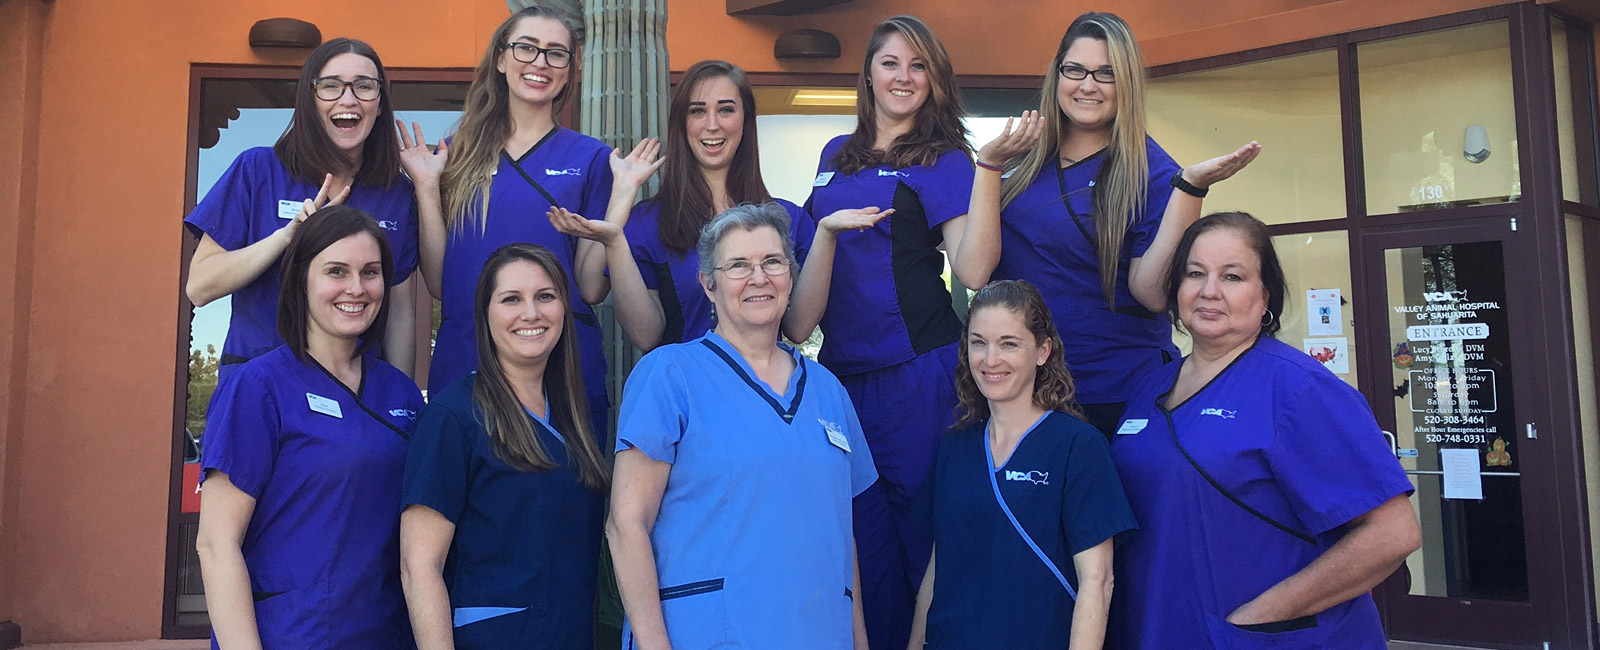 Team Picture of VCA Valley Sahuarita Animal Hospital